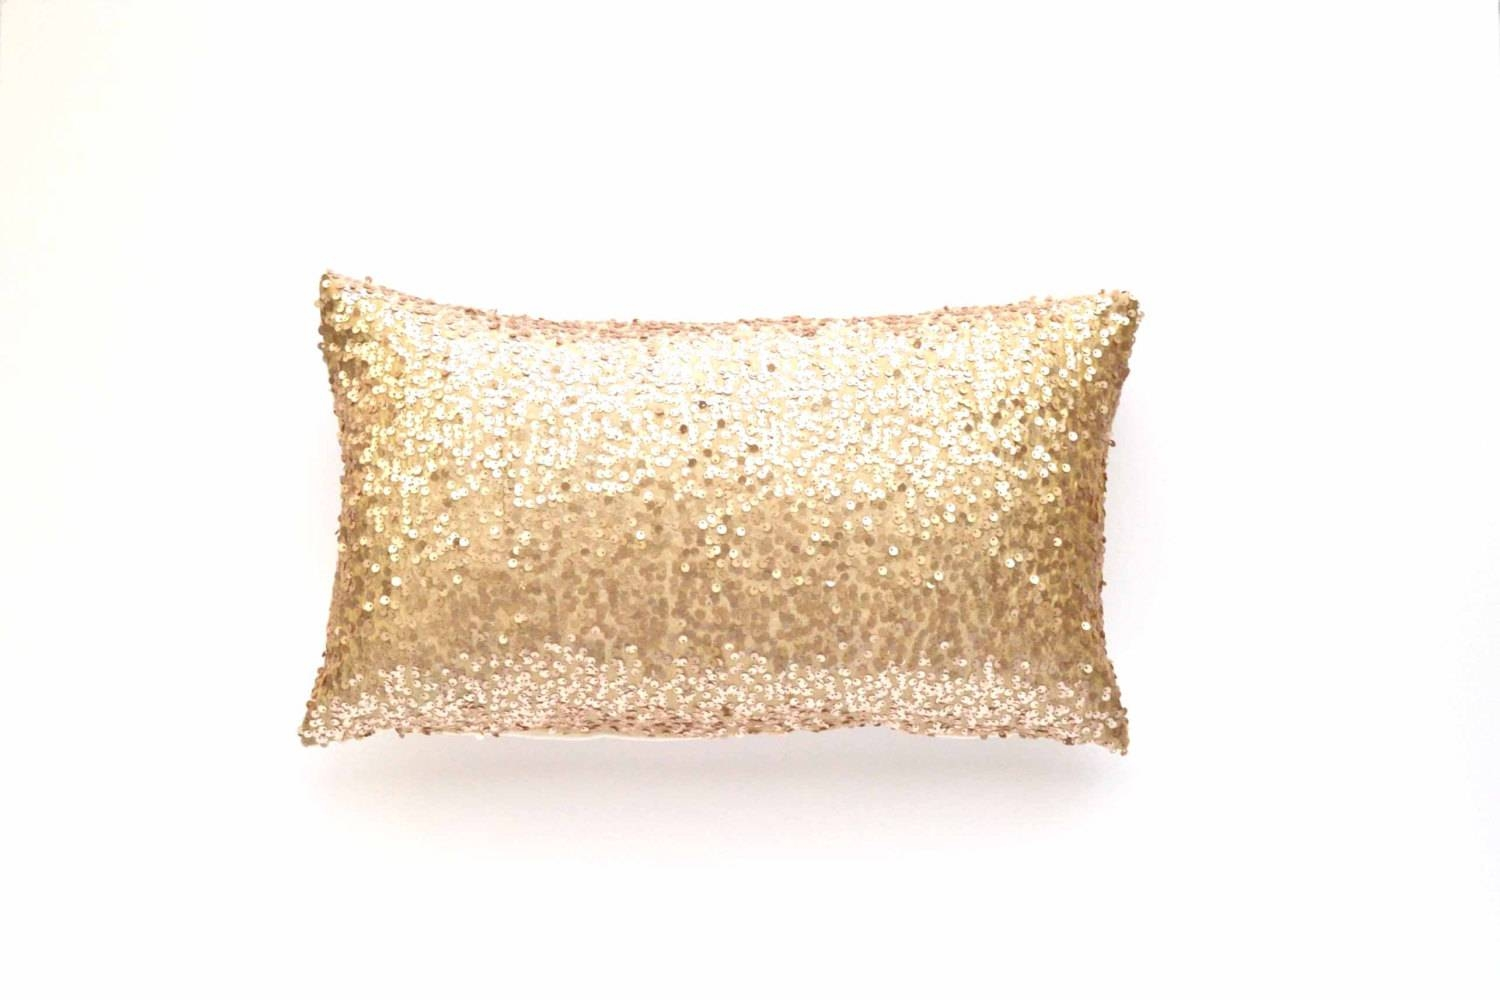 Sequin Lumbar Pillow Cover - Champagne Sequin - 12 X 20 - Throw with Gold Sofa Pillows (Image 10 of 15)